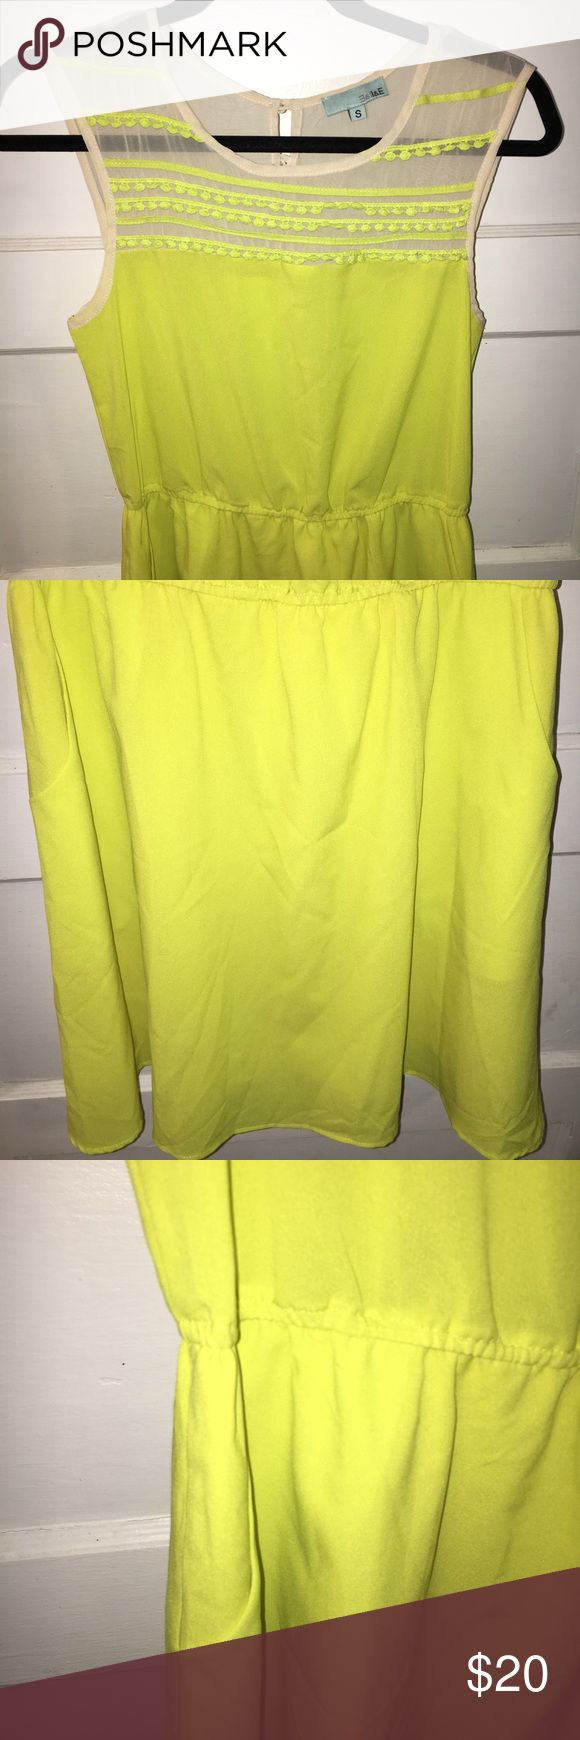 NEON COLOR DRESS W/ SHEER TOP. SIZE SML E & II & E NEON COLOR DRESS W/ SHEER TOP. SIZE SMALL. BUTTONS IN BACK AT TOP. MINI LENGTH. LIGHTWEIGHT. SUMMER DRESS. EXCELLENT CONDITION. MAKE AN OFFER. Dresses Mini